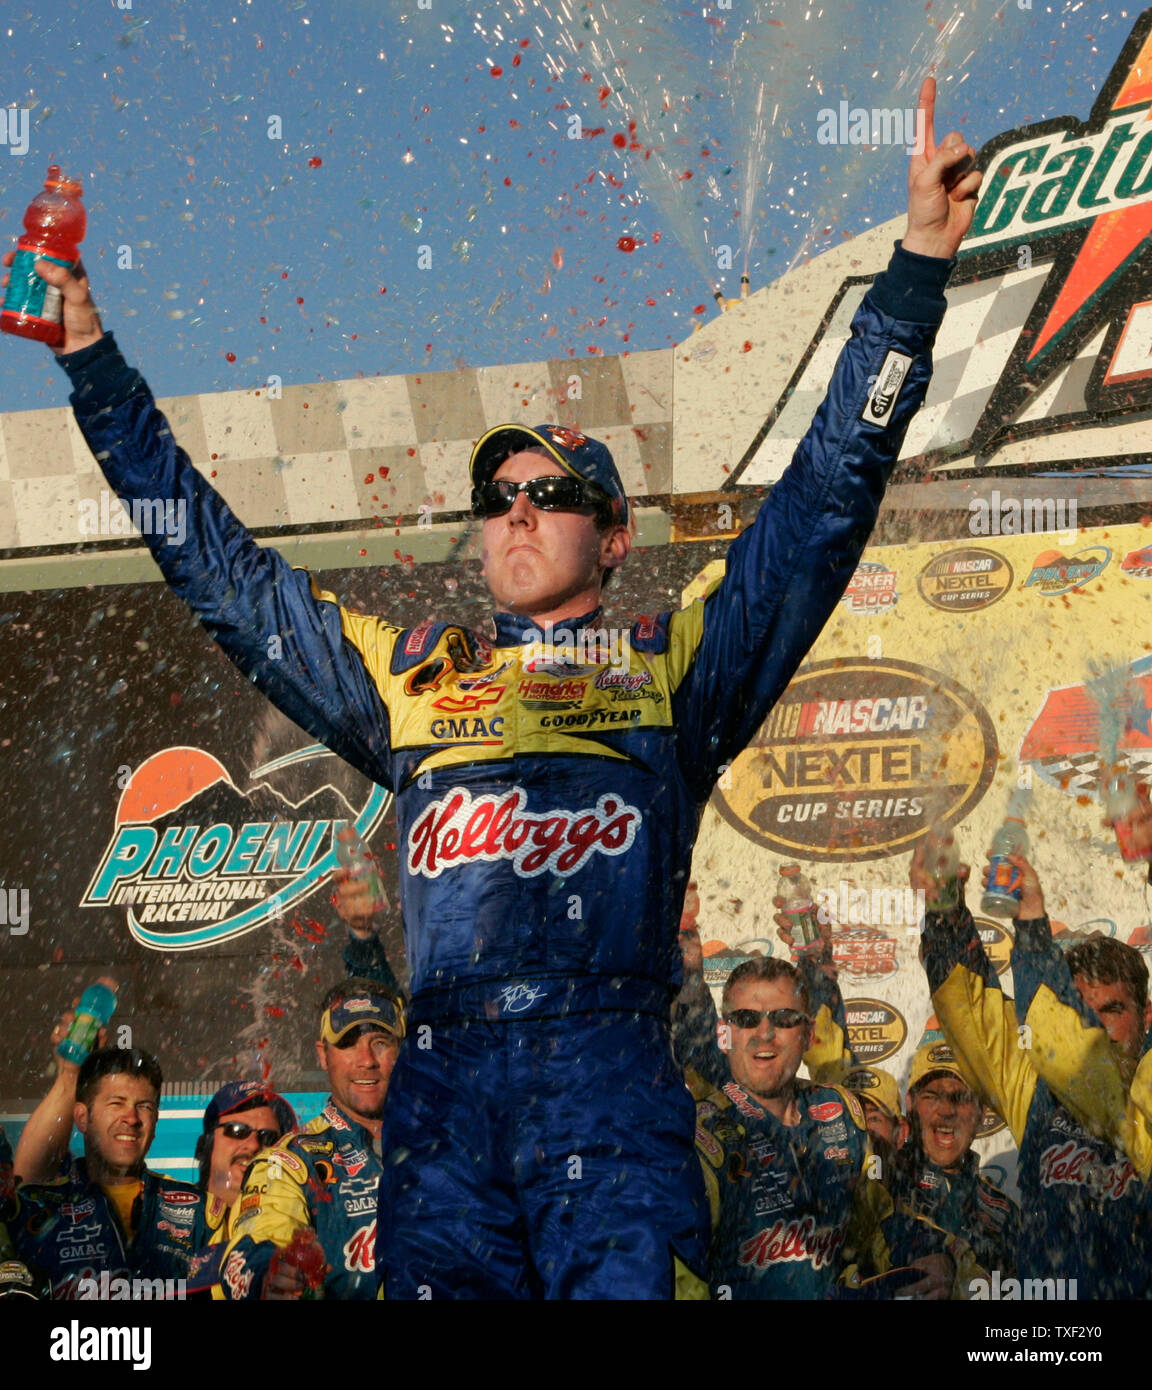 Phoenix Auto Parts >> Kyle Busch Wins The Checker Auto Parts 500 At Phoenix